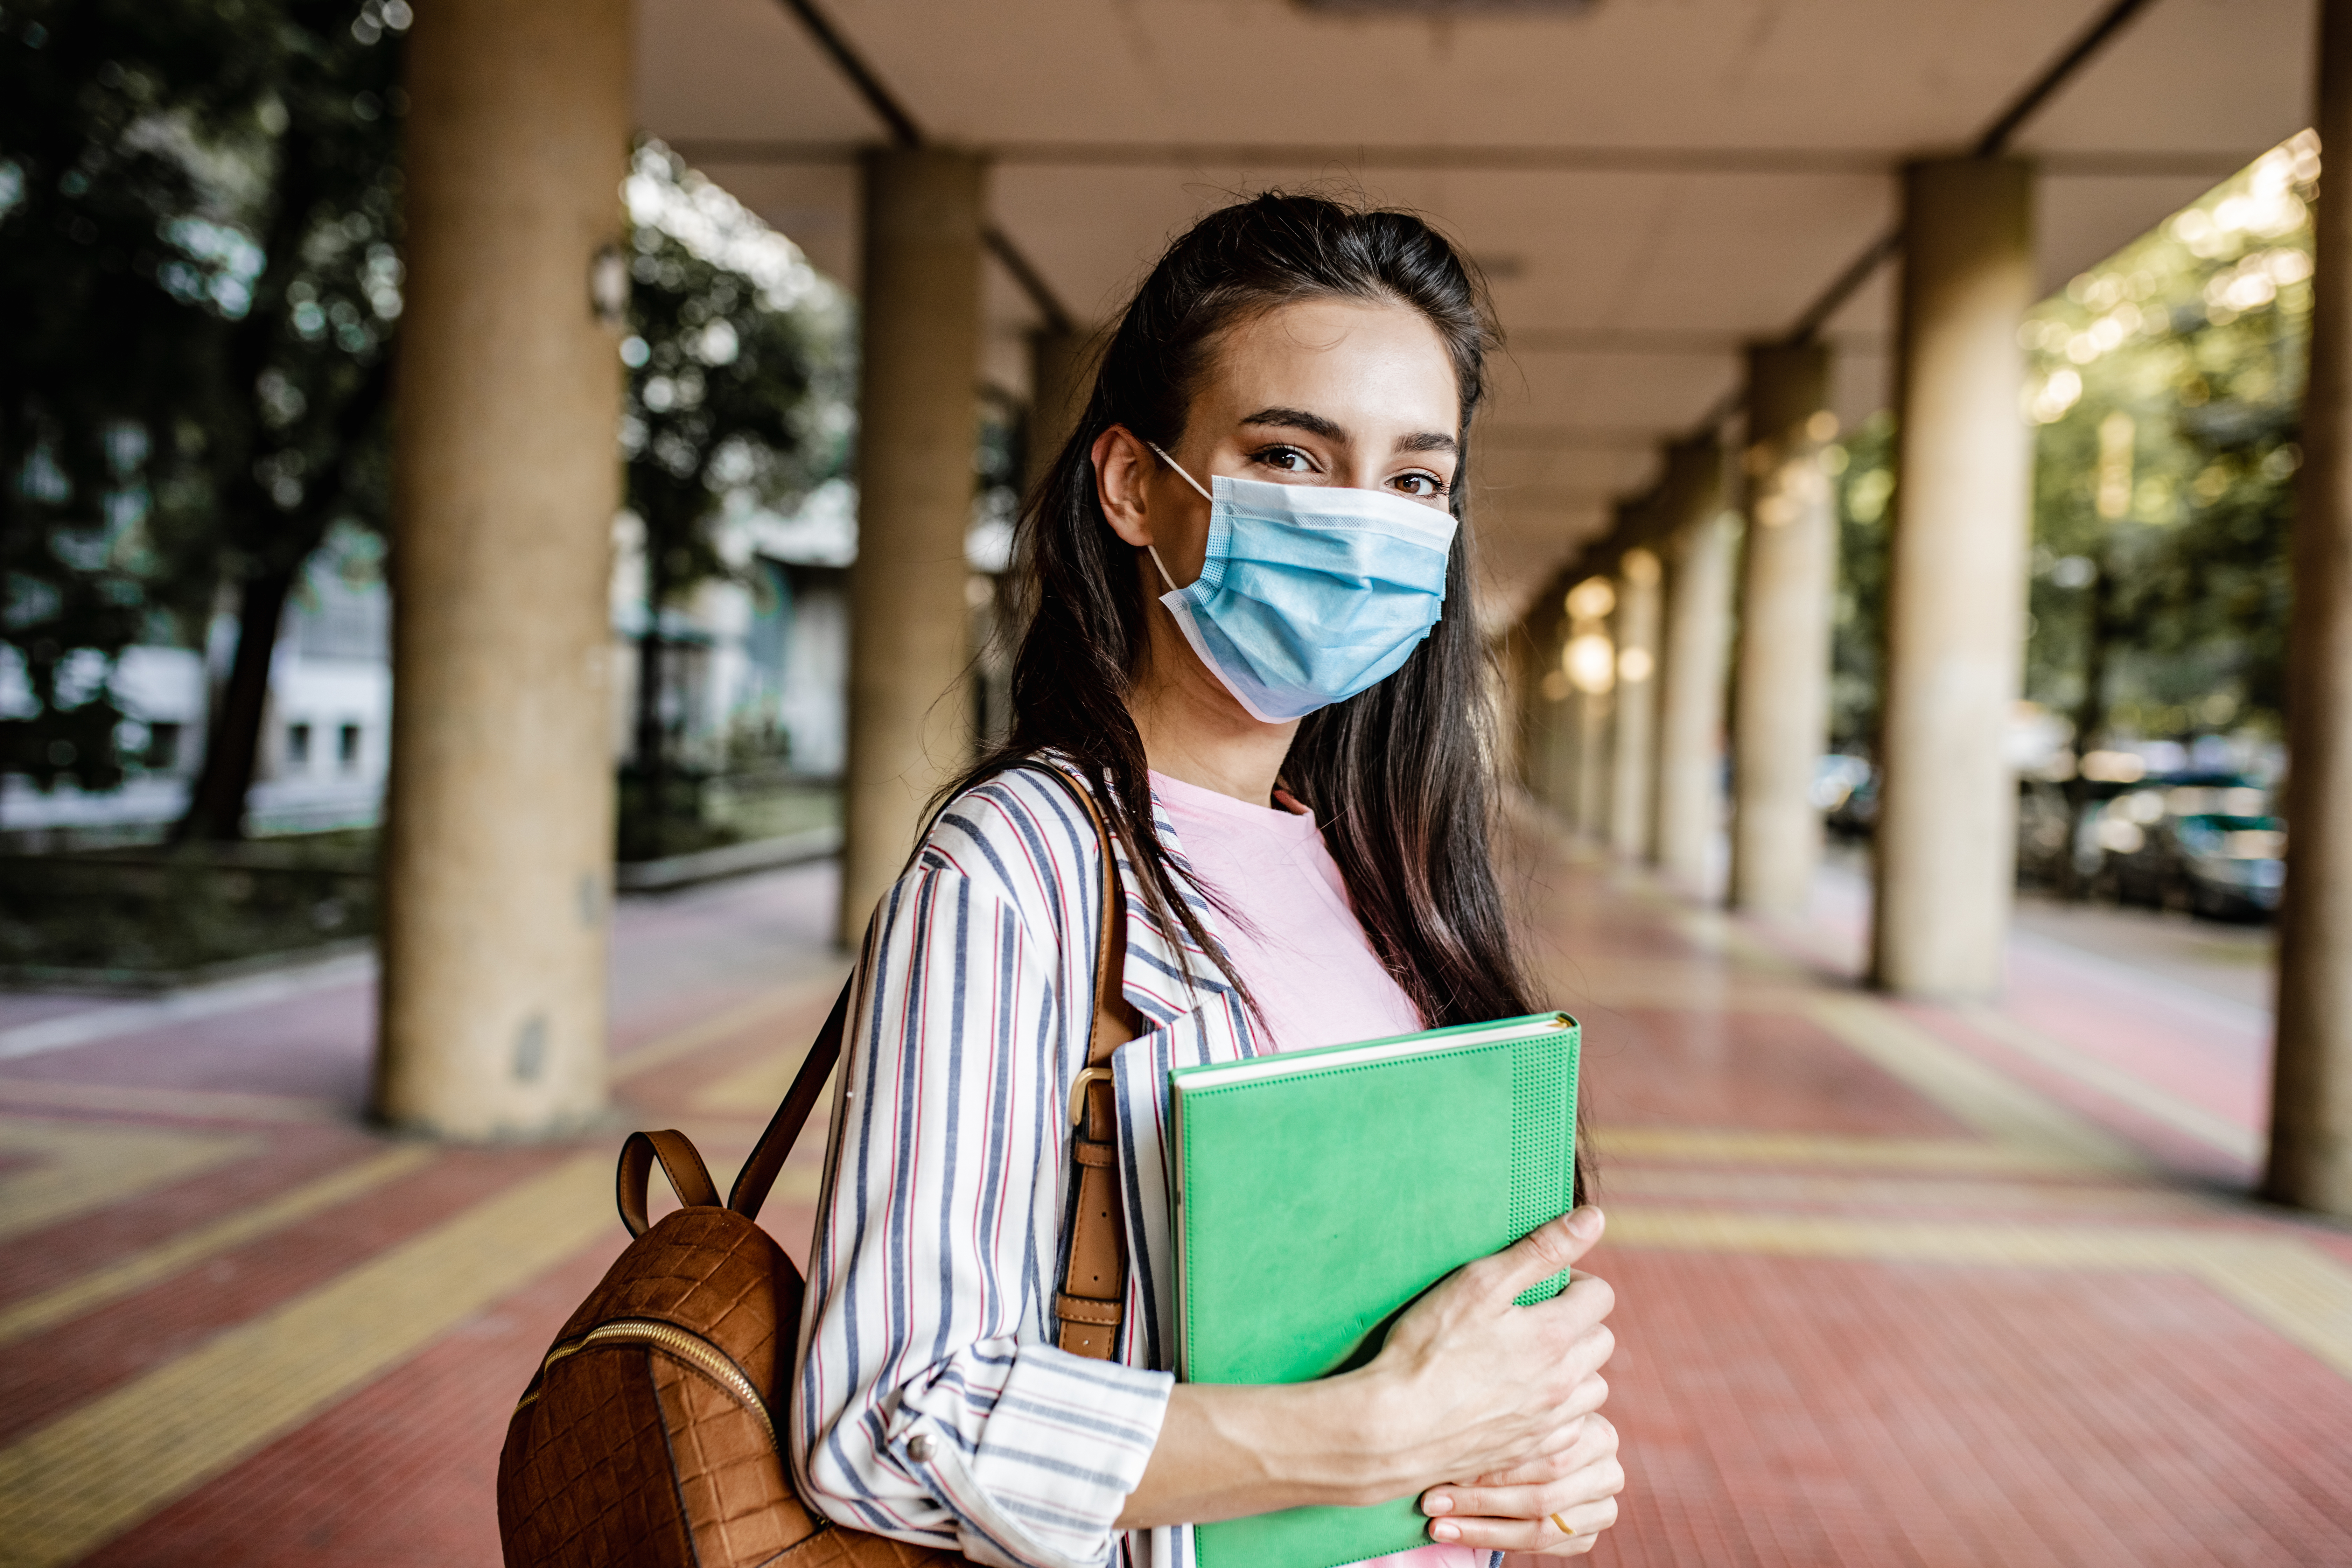 A young woman is holding a notebook and wearing a face mask